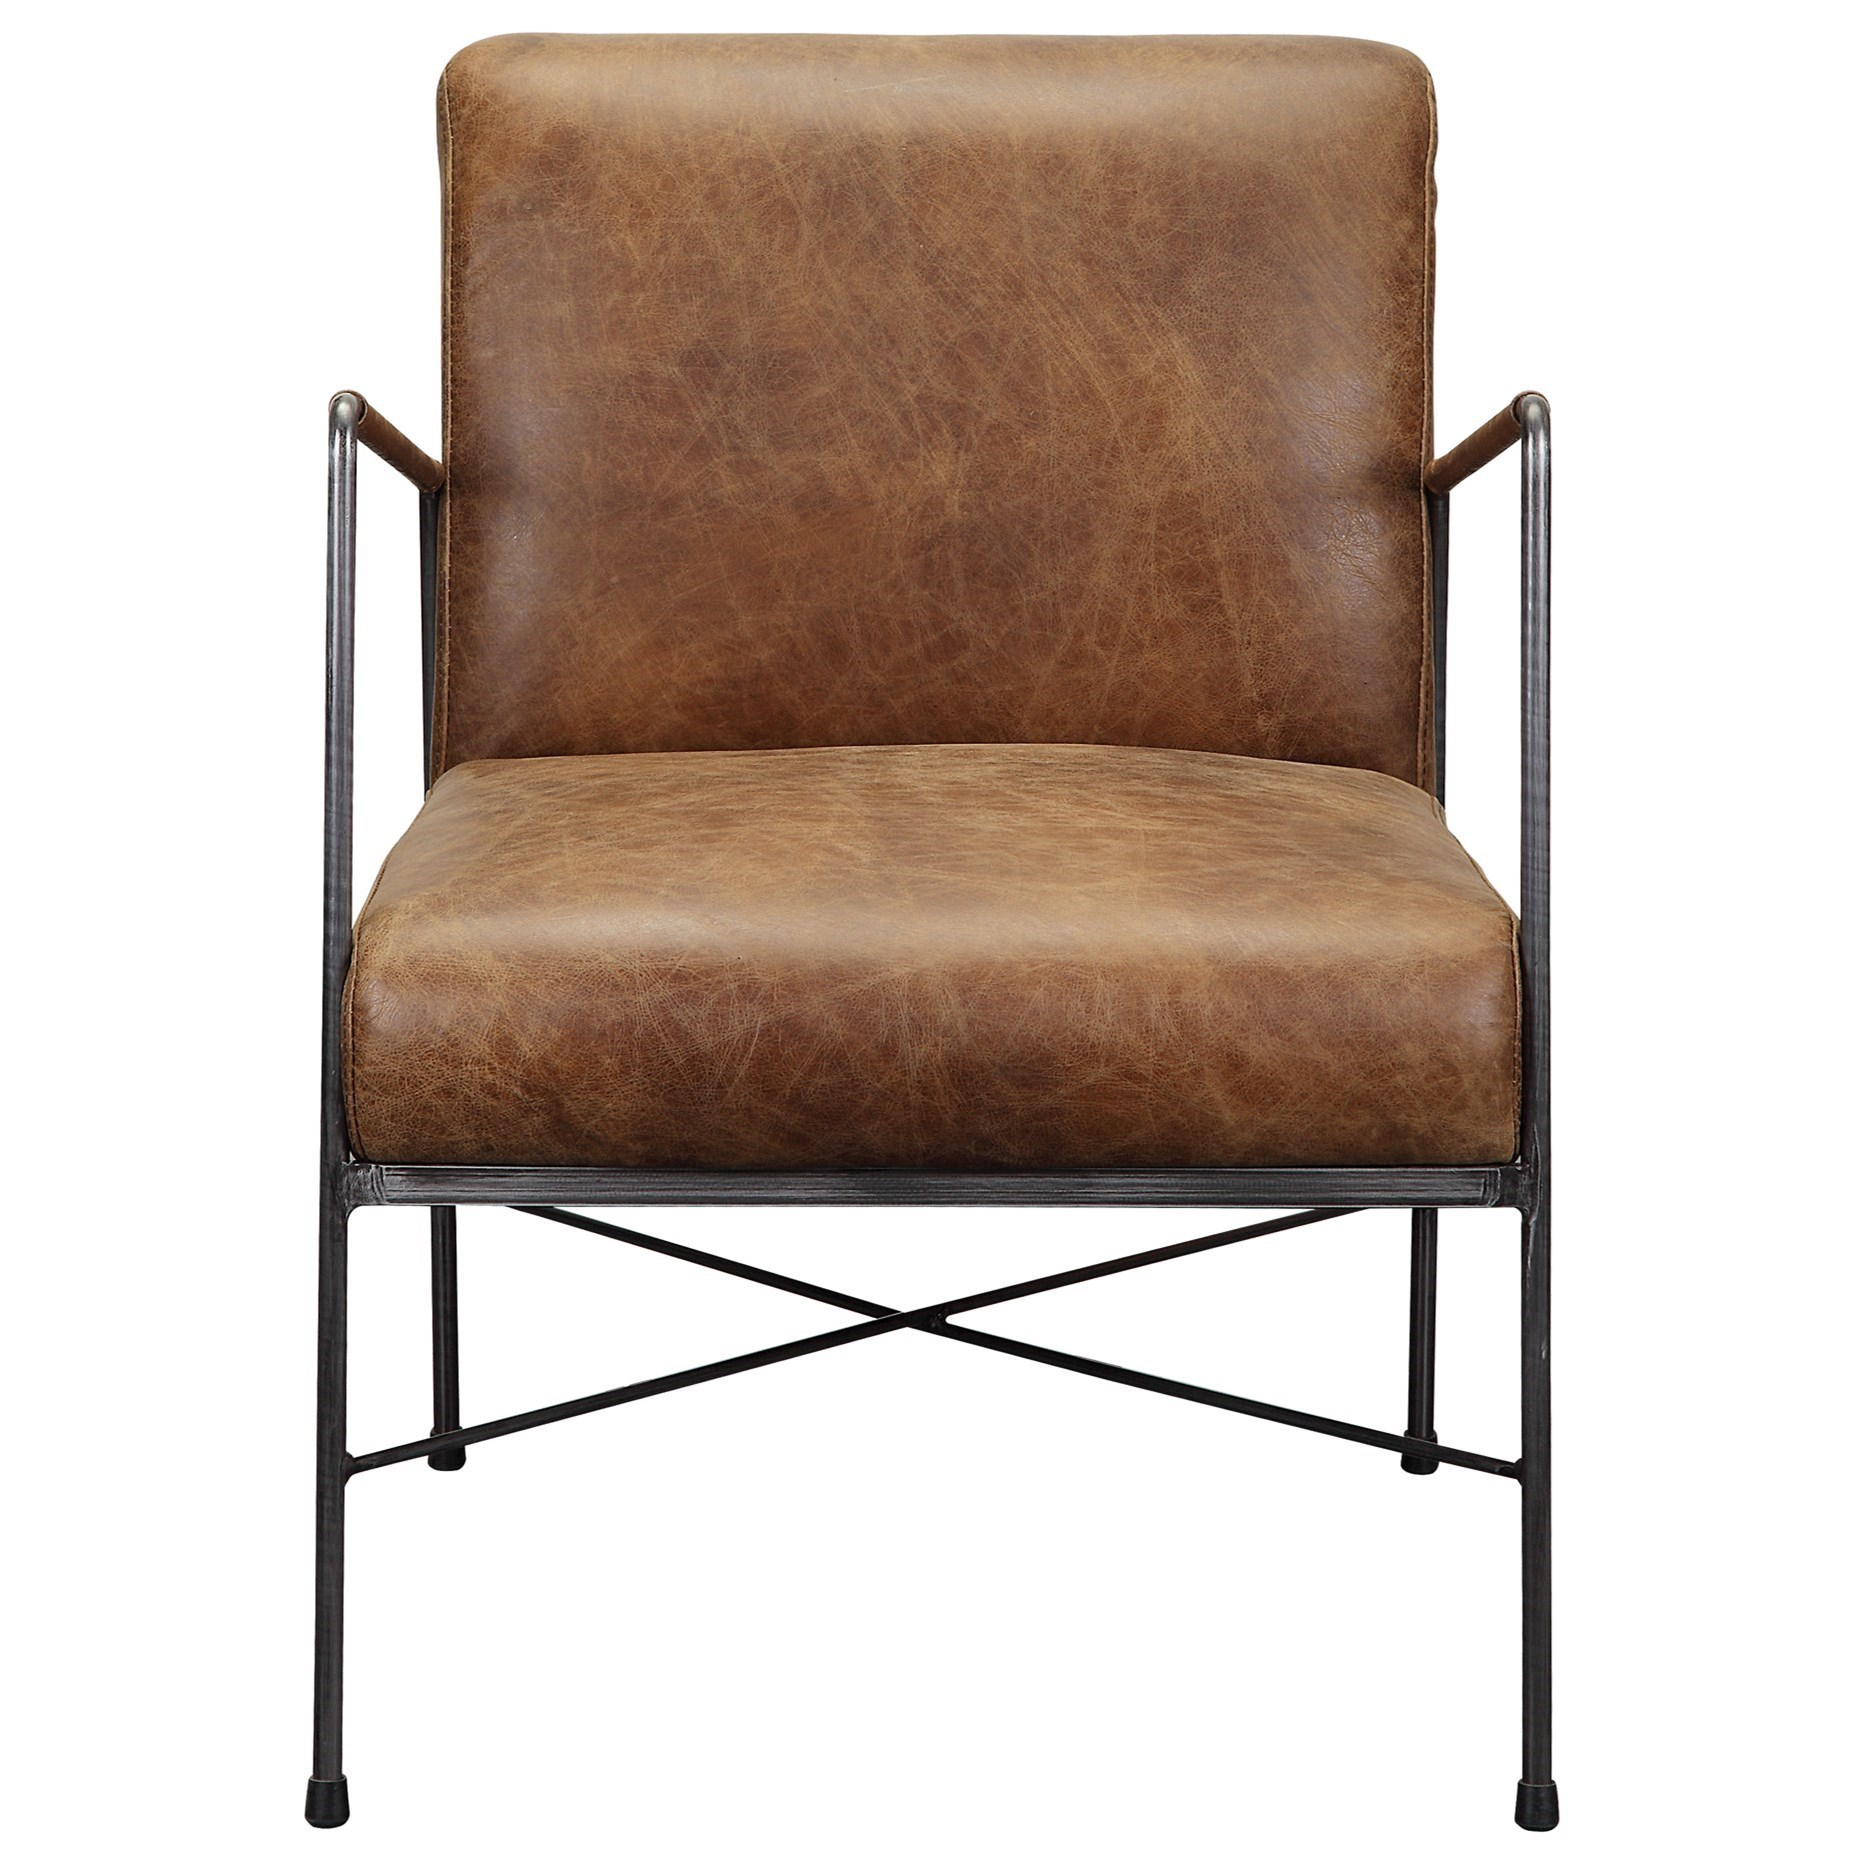 Dagwood Leather Arm Chair by Moe's Home Collection at Stoney Creek Furniture